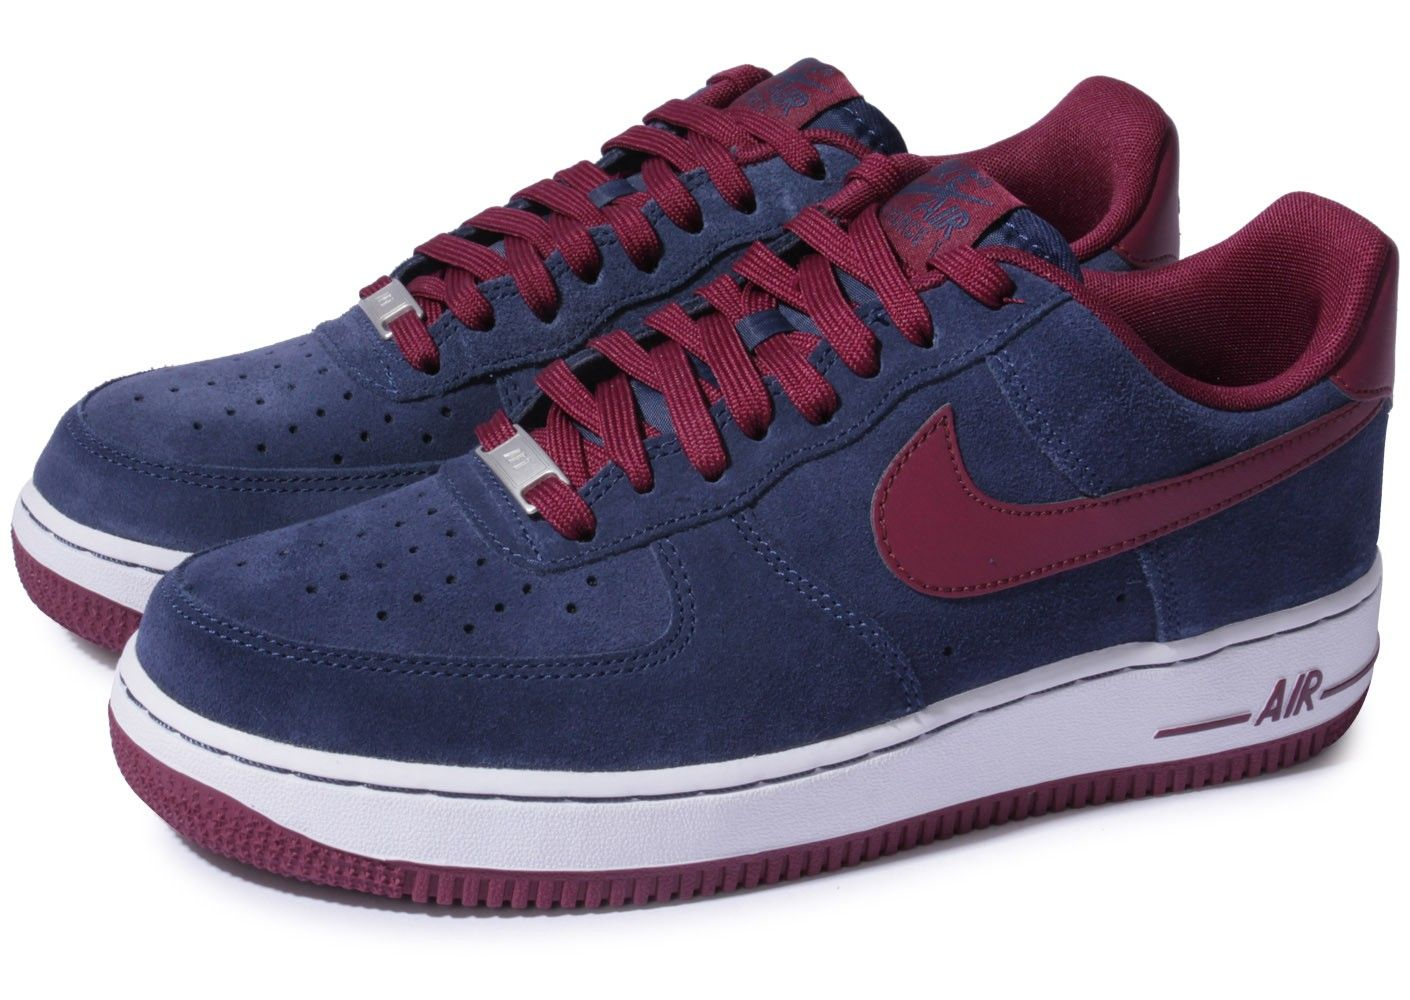 nike air force one rouge bordeaux,Nike Air Force 1 u002707